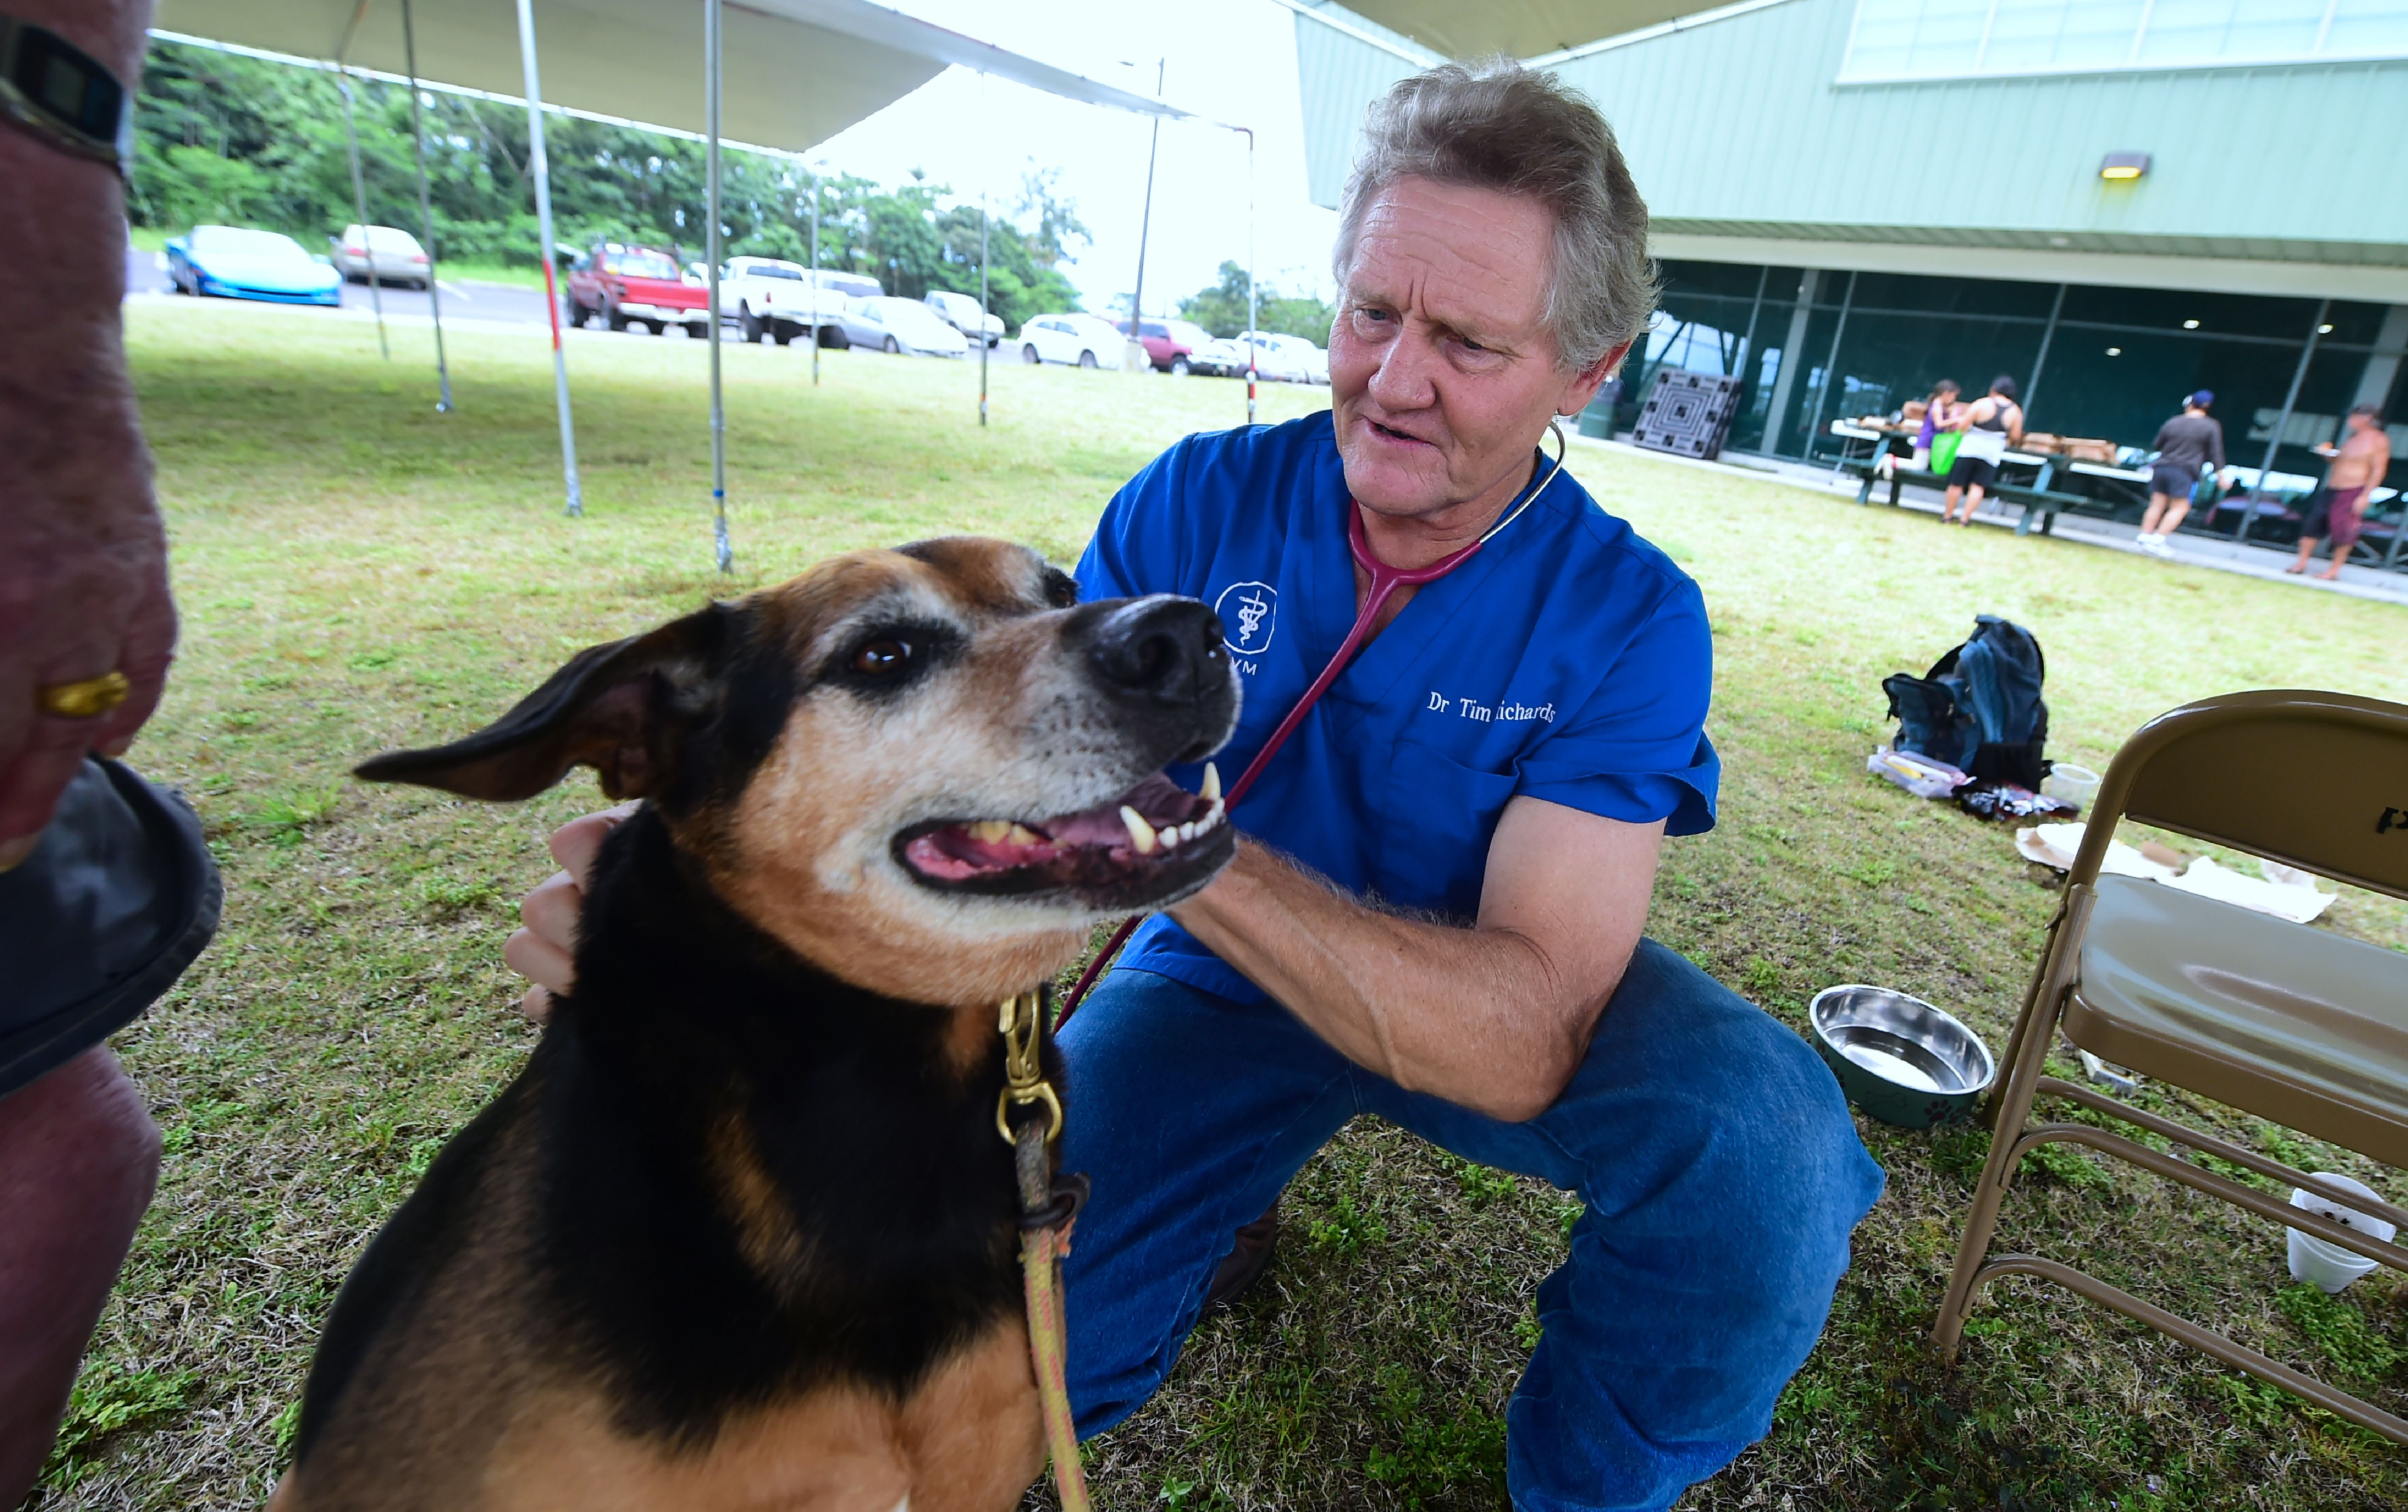 A veterinarian checks on a dog at the Pahoa Community Center in Hawaii.